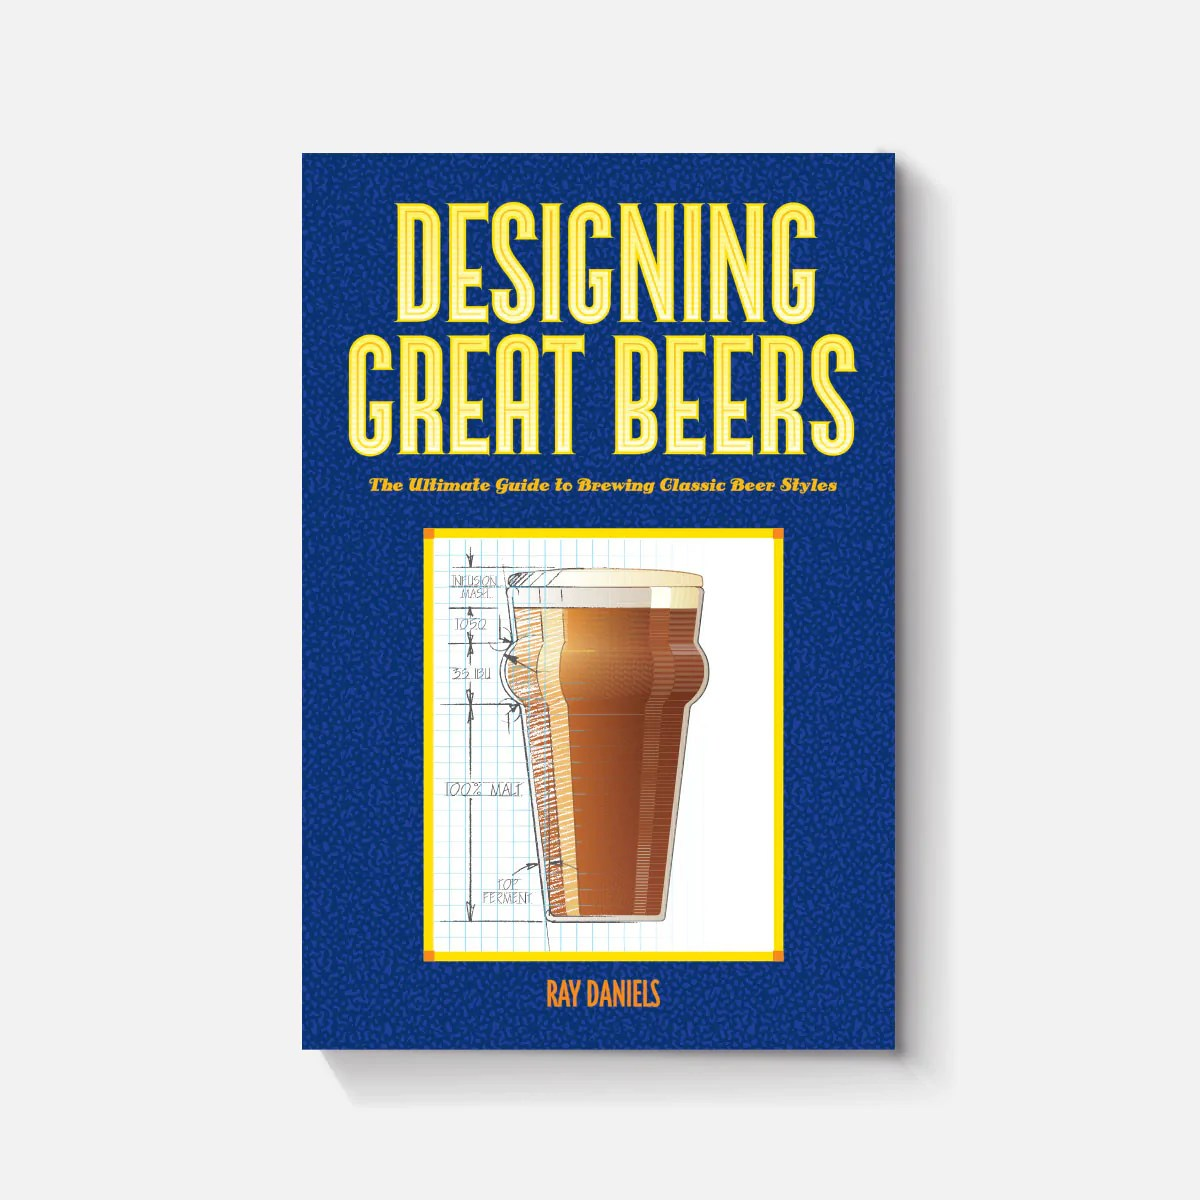 Designing Great Beers The Ultimate Guide To Brewing Classic Beer Styl Brewers Publications